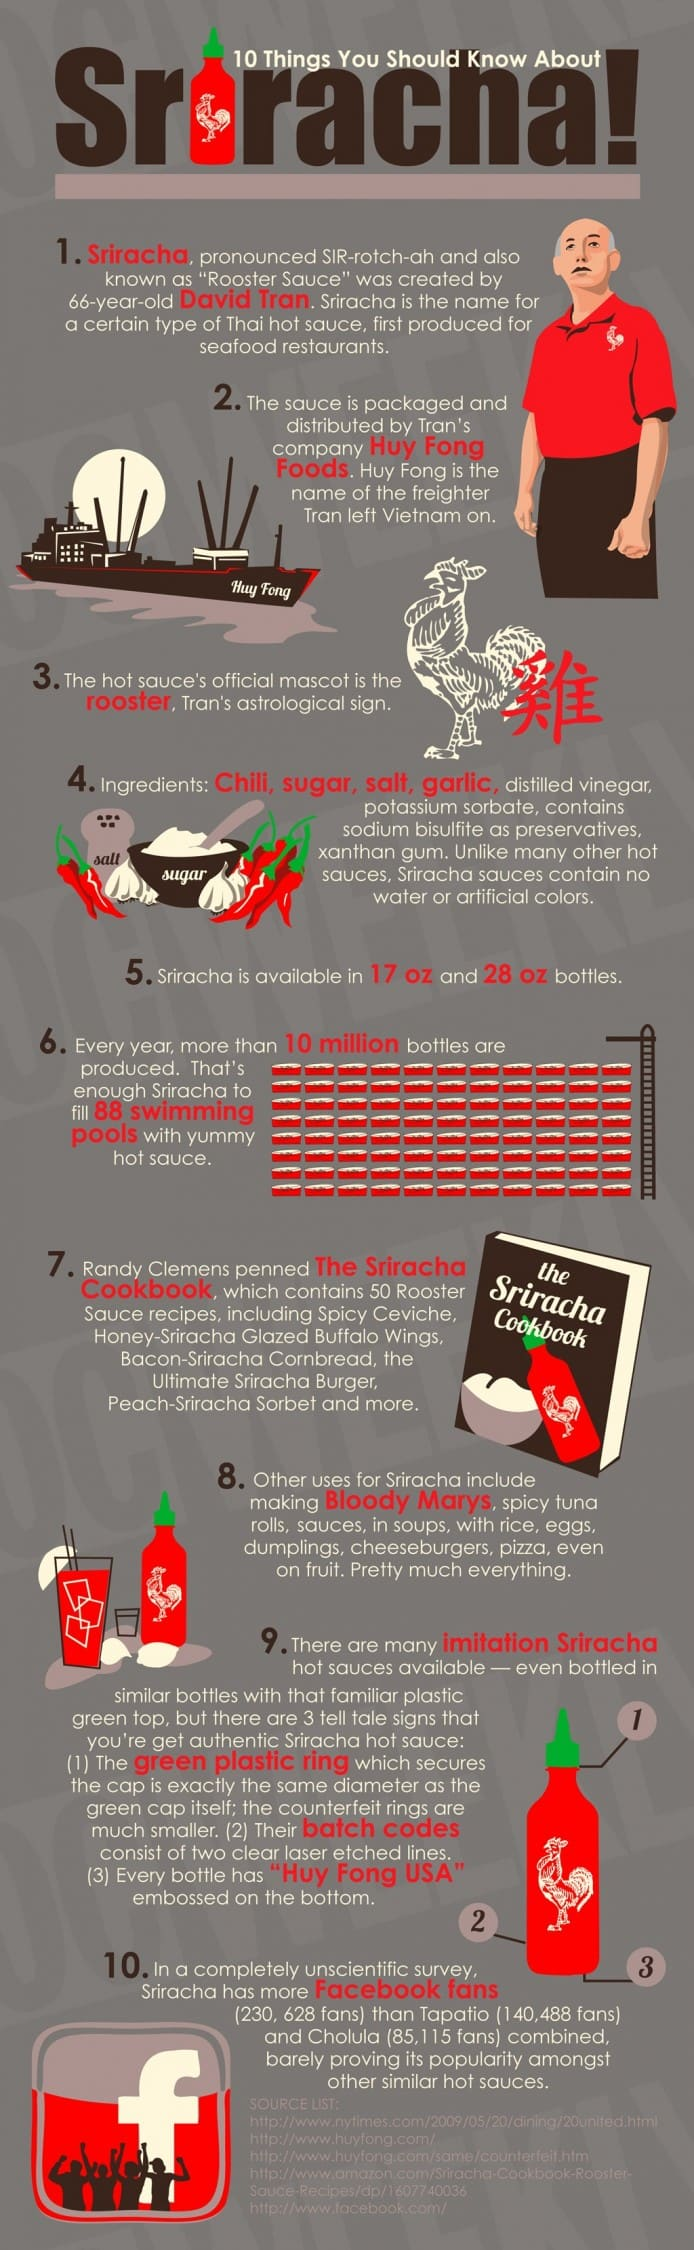 10 Things You Should Know About Sriracha